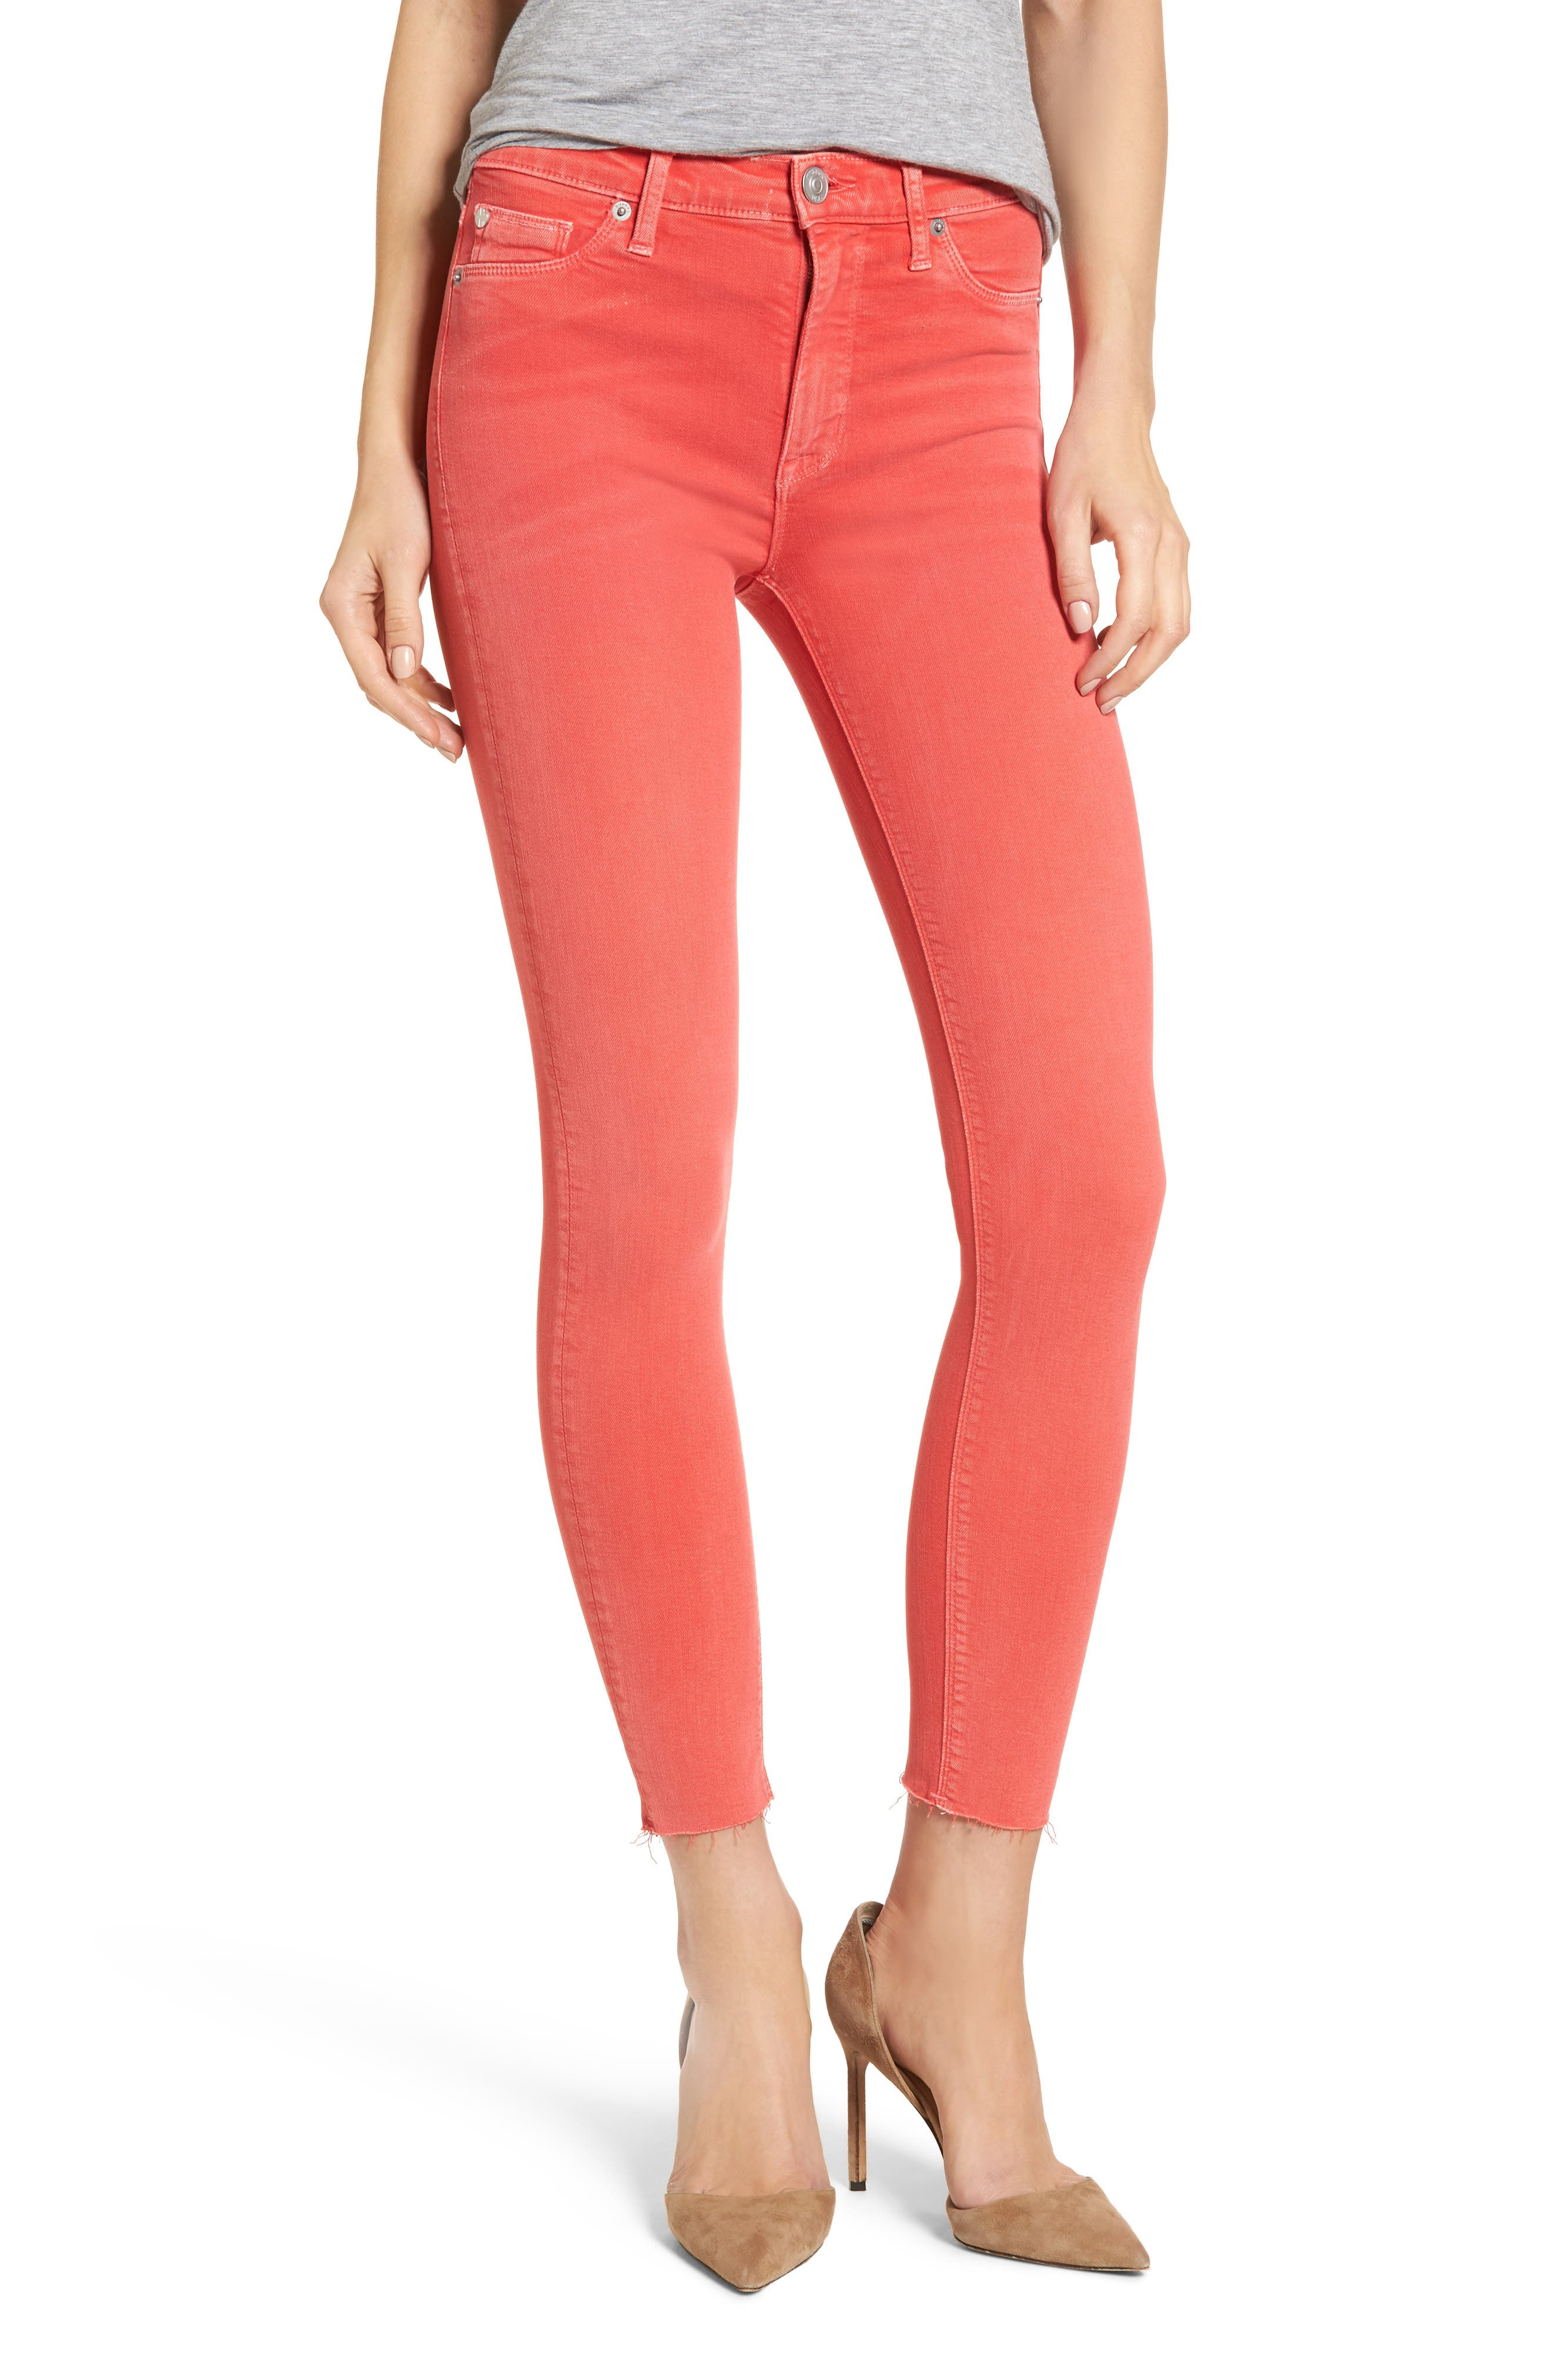 HUDSON JEANS Tally Crop Skinny Jeans, Main, color, 640